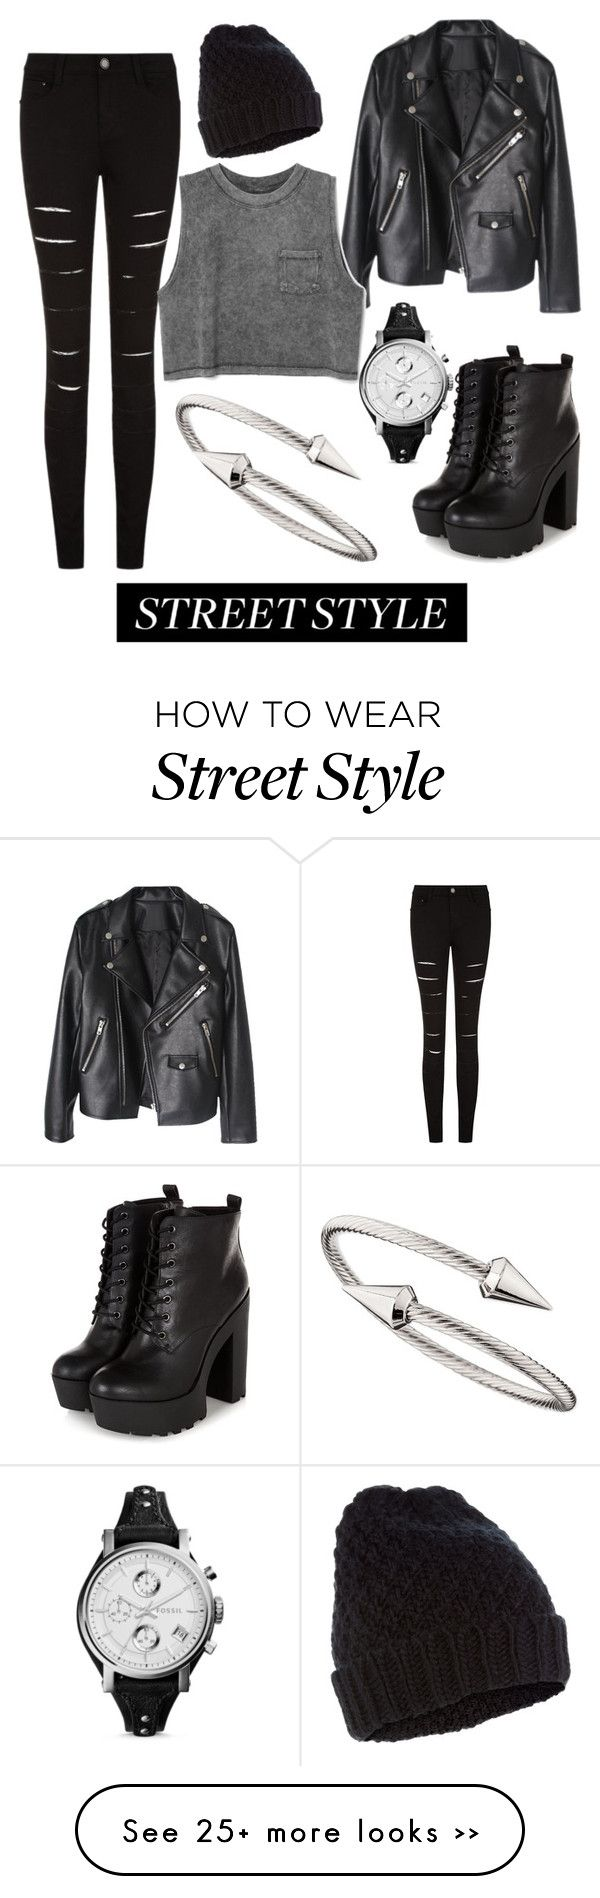 """""""Dark Shadows"""" by screen4ger on Polyvore featuring Jules Smith, Accessorize and FOSSIL"""